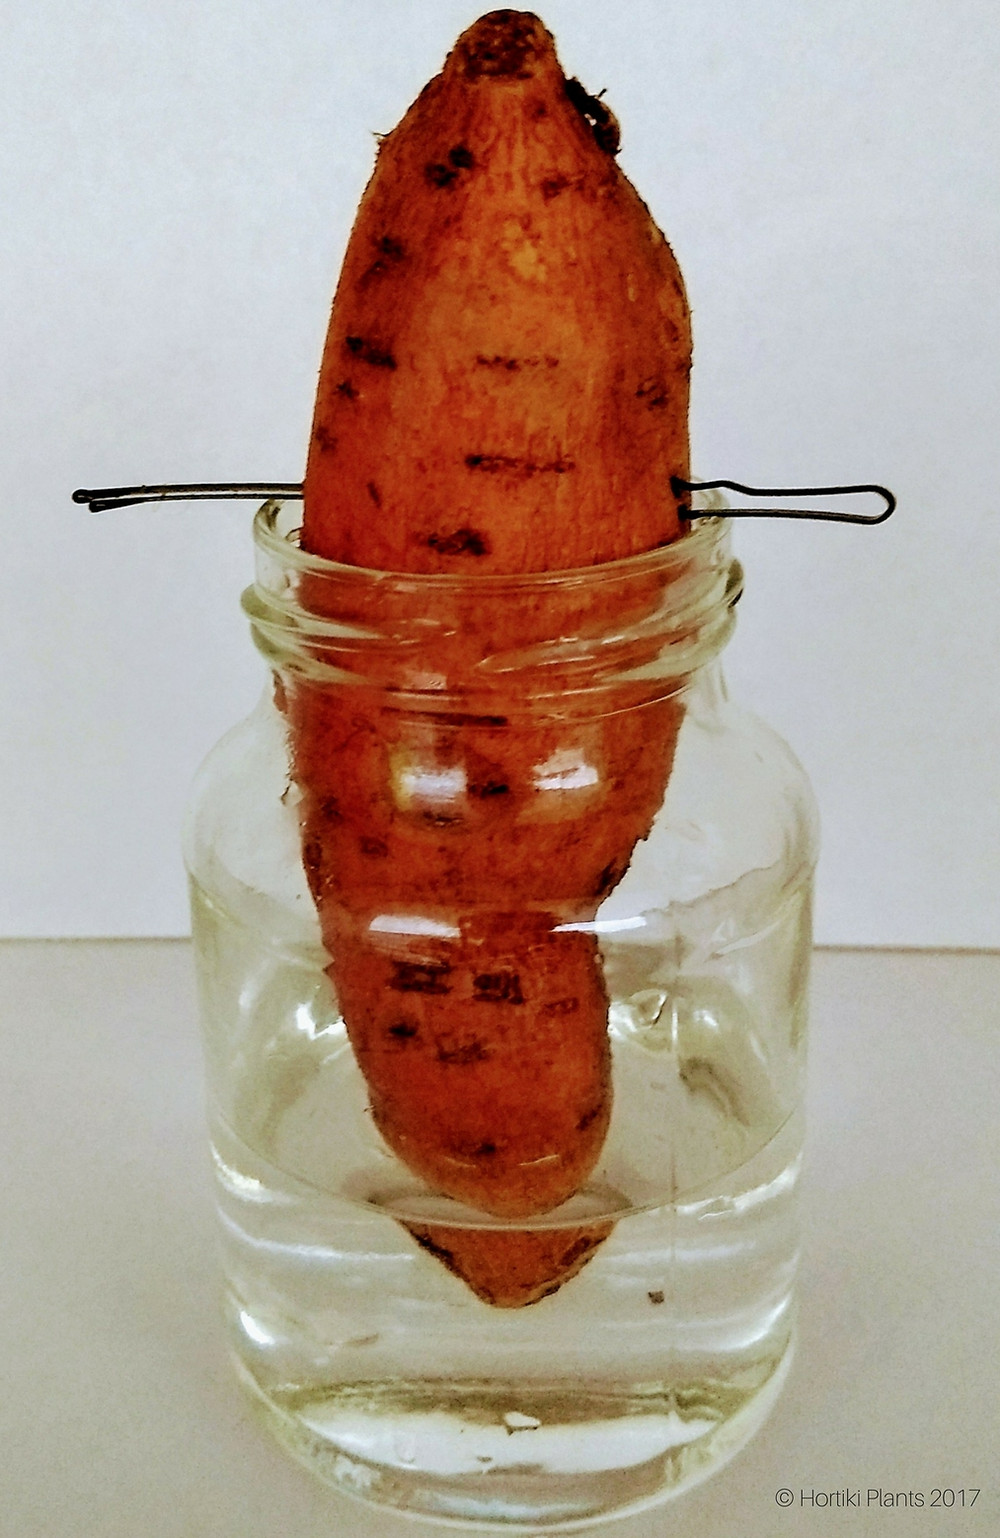 Image of sweet potato suspended in jar with water.